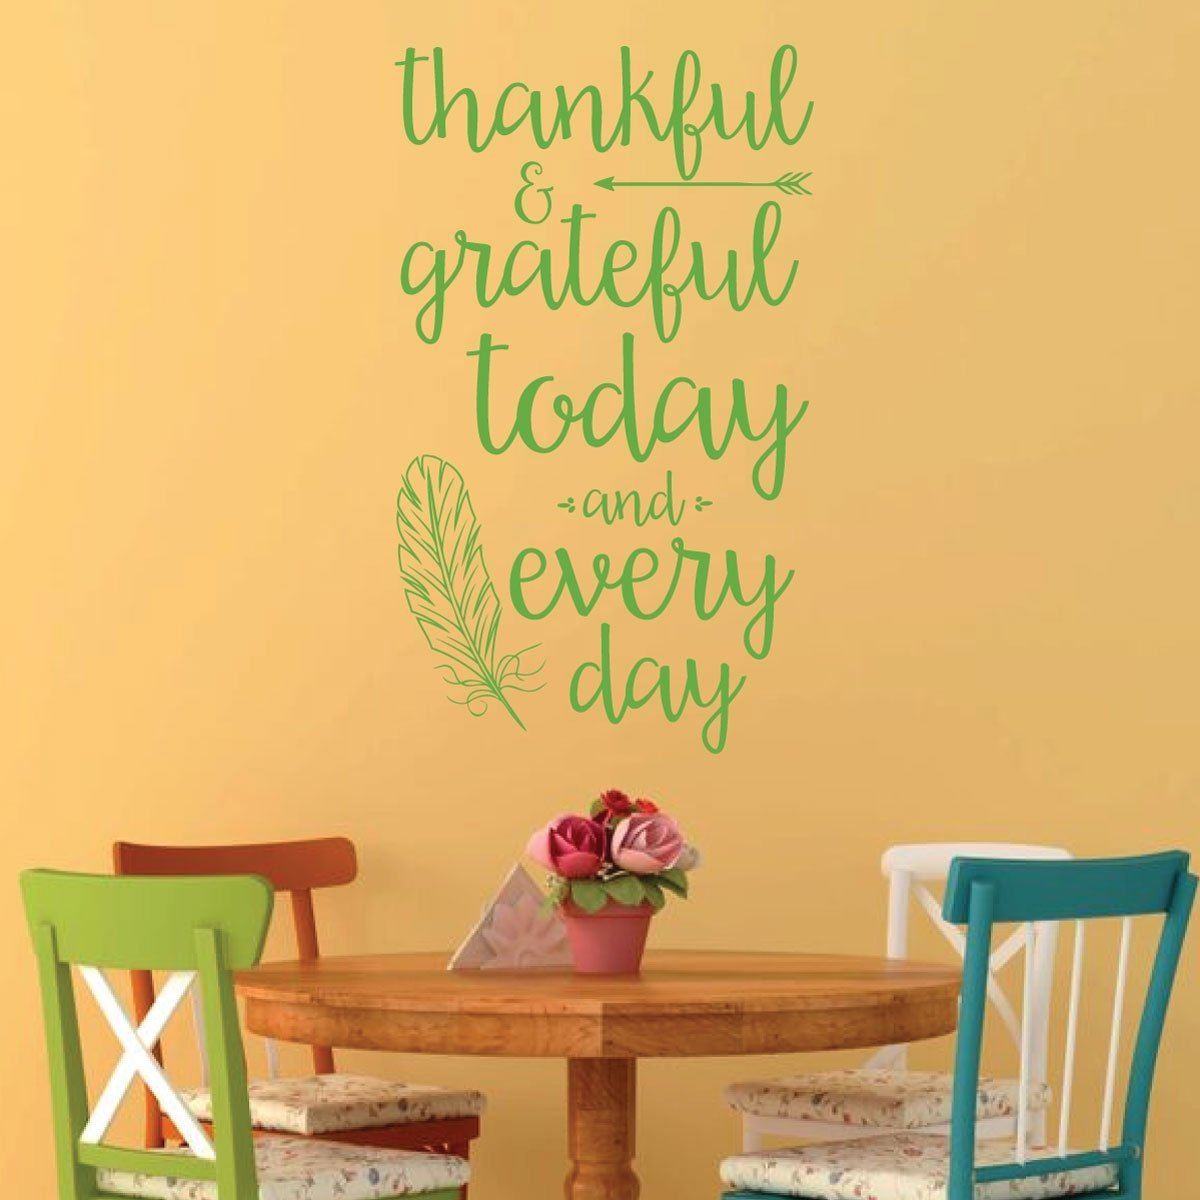 Thanksgiving Decor - Thankful and Grateful Today and Every Day